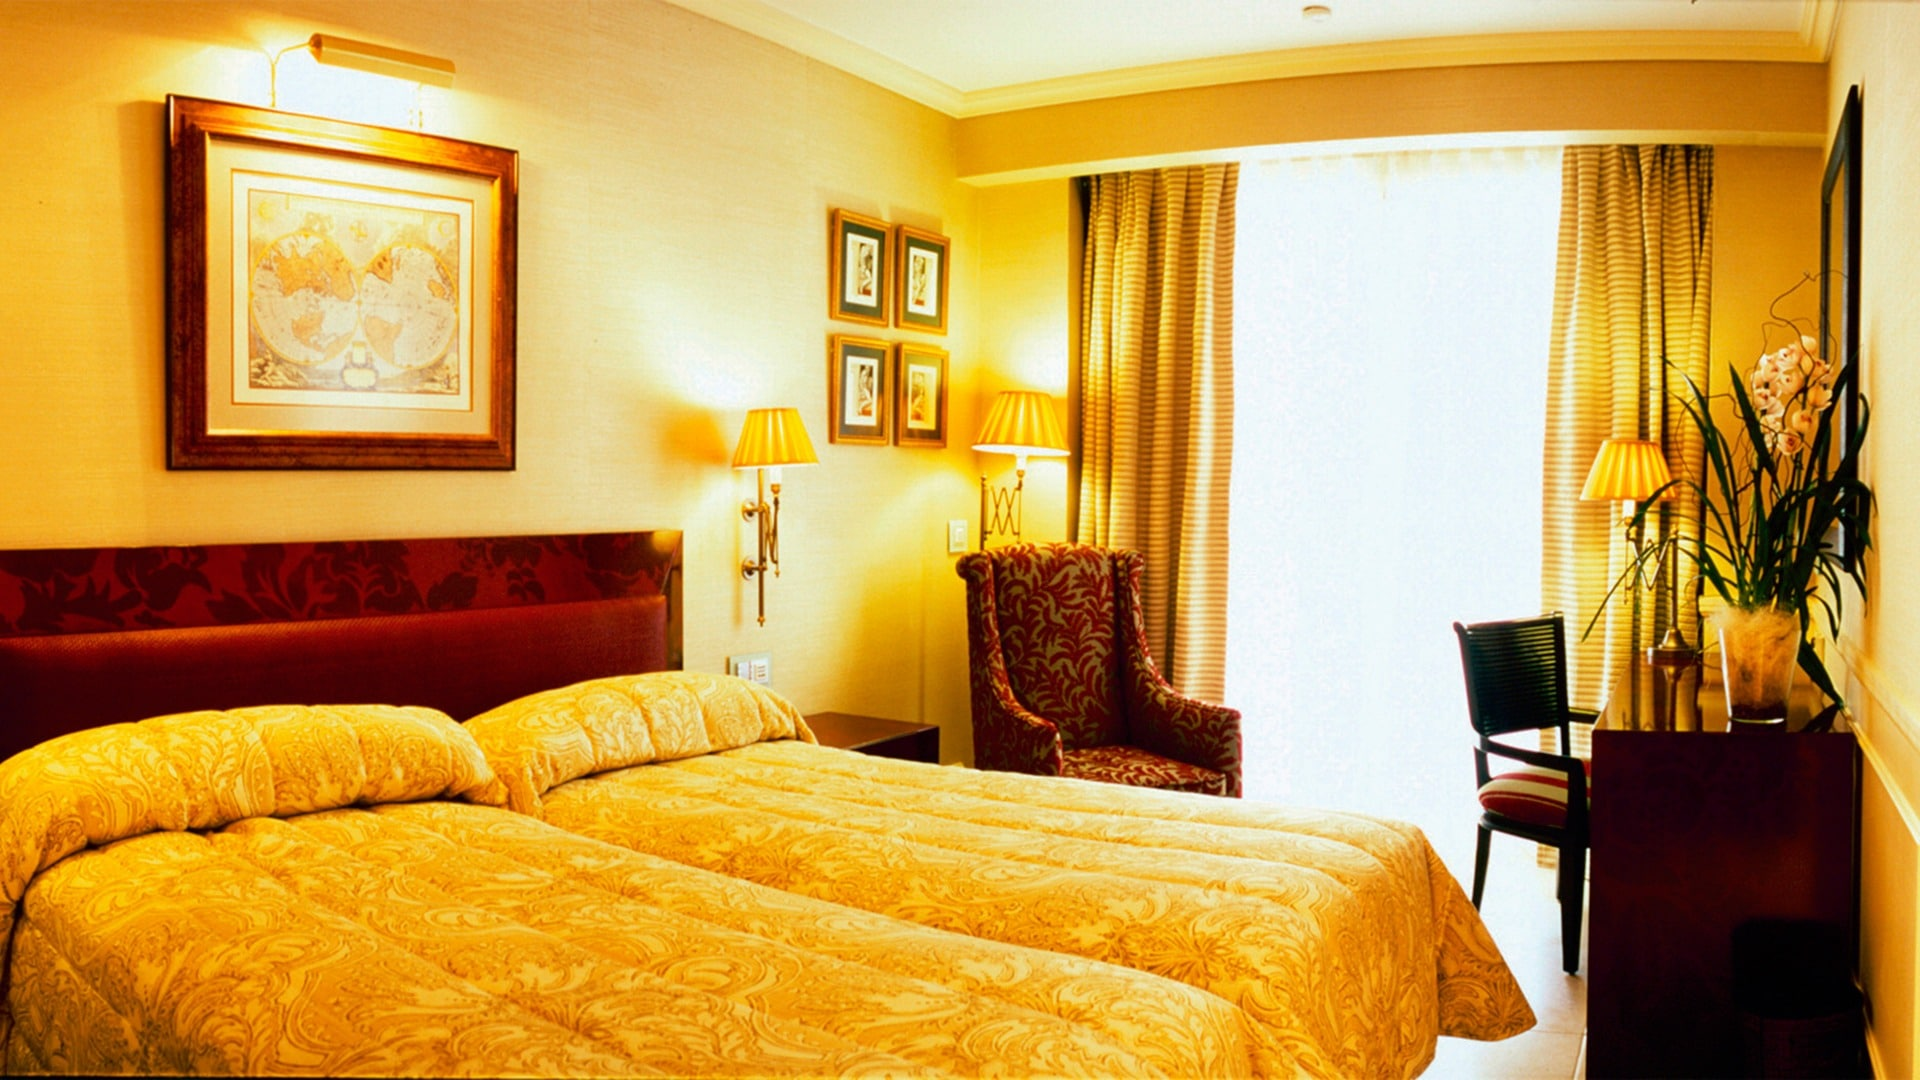 Rooms suites and family rooms gran hotel guadalpin banus 5 for Hotels with family rooms for 5